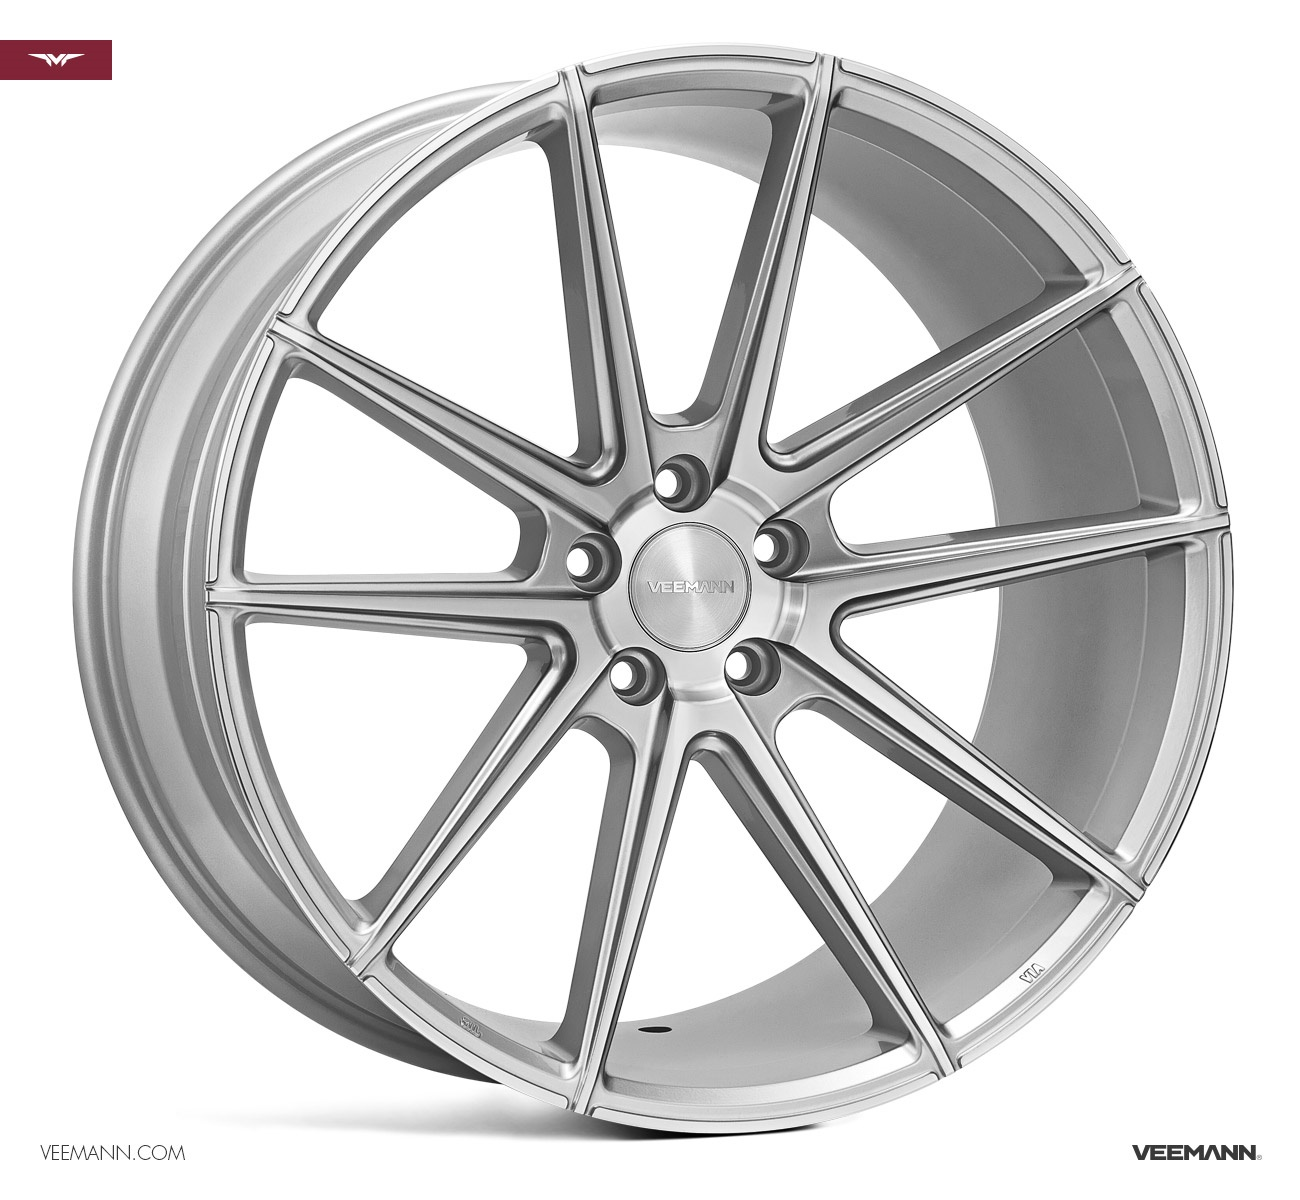 "NEW 21"" VEEMANN V-FS4 IN SILVER POL WITH DEEPER CONCAVE 10.5"" REARS et32/et42"